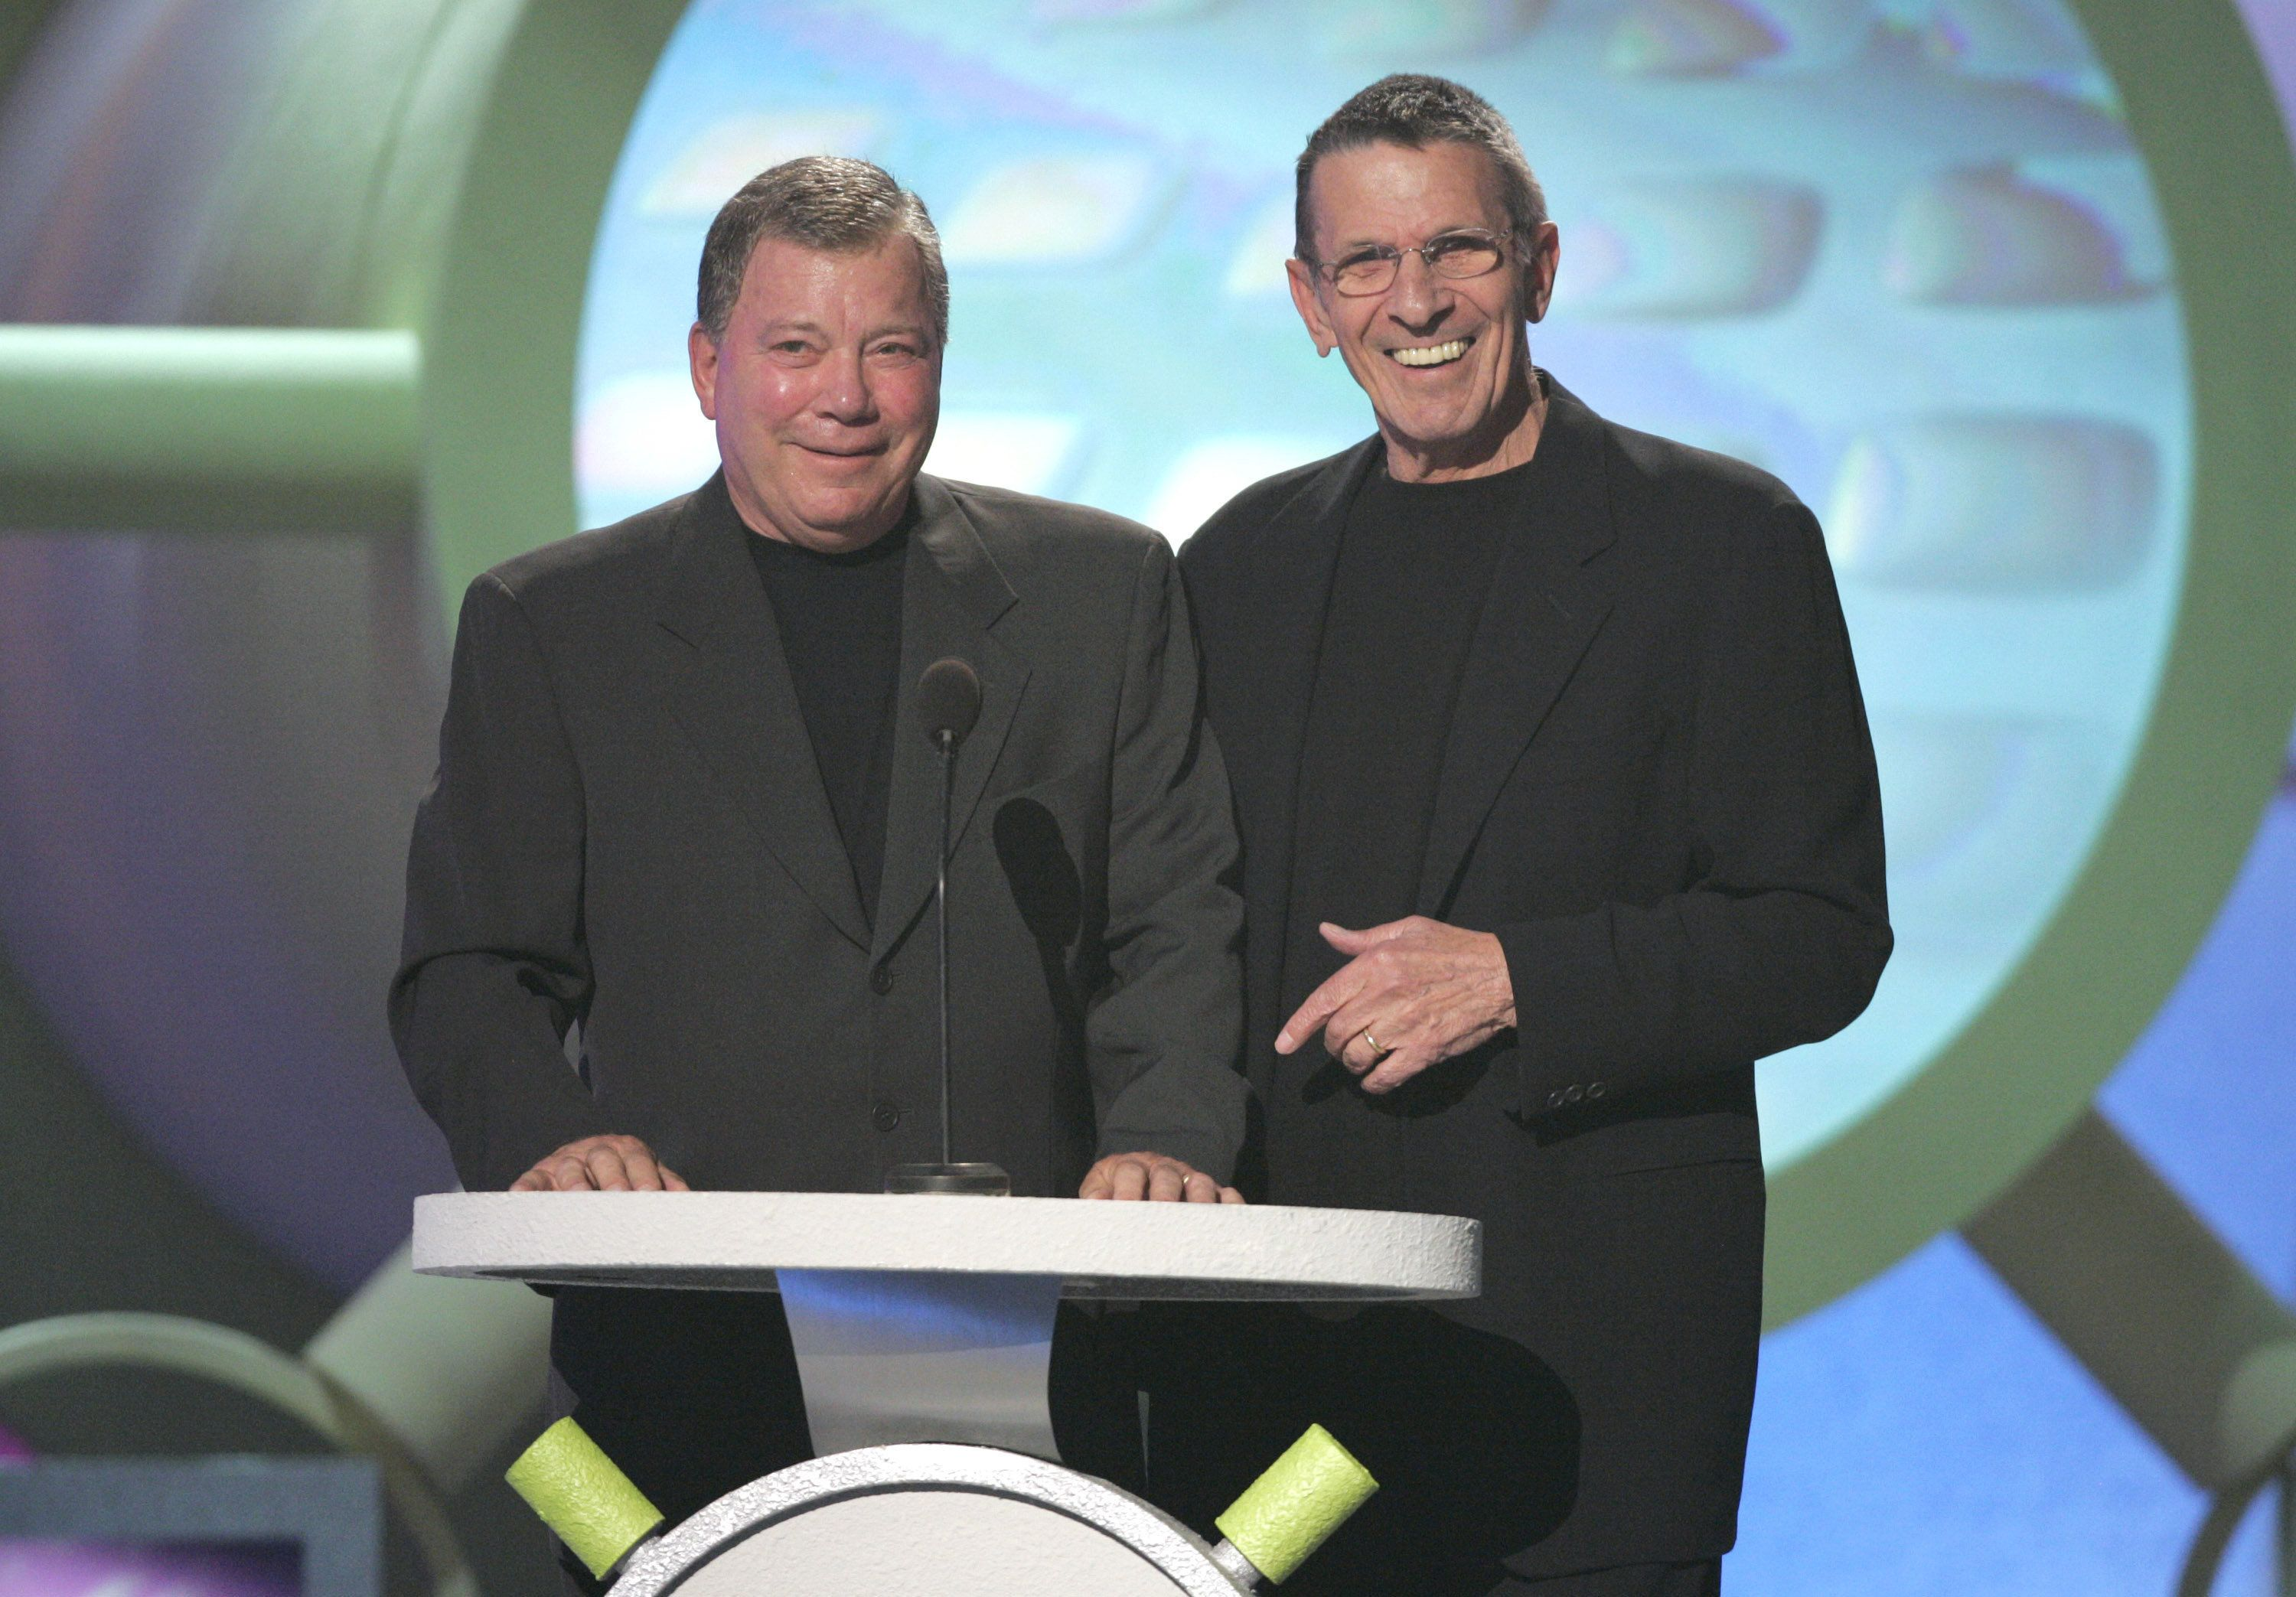 William Shatner and Leonard Nimoy present the Viewer's Choice Award - King of Zing / Queen of Quip (Photo by J. Merritt/FilmMagic)